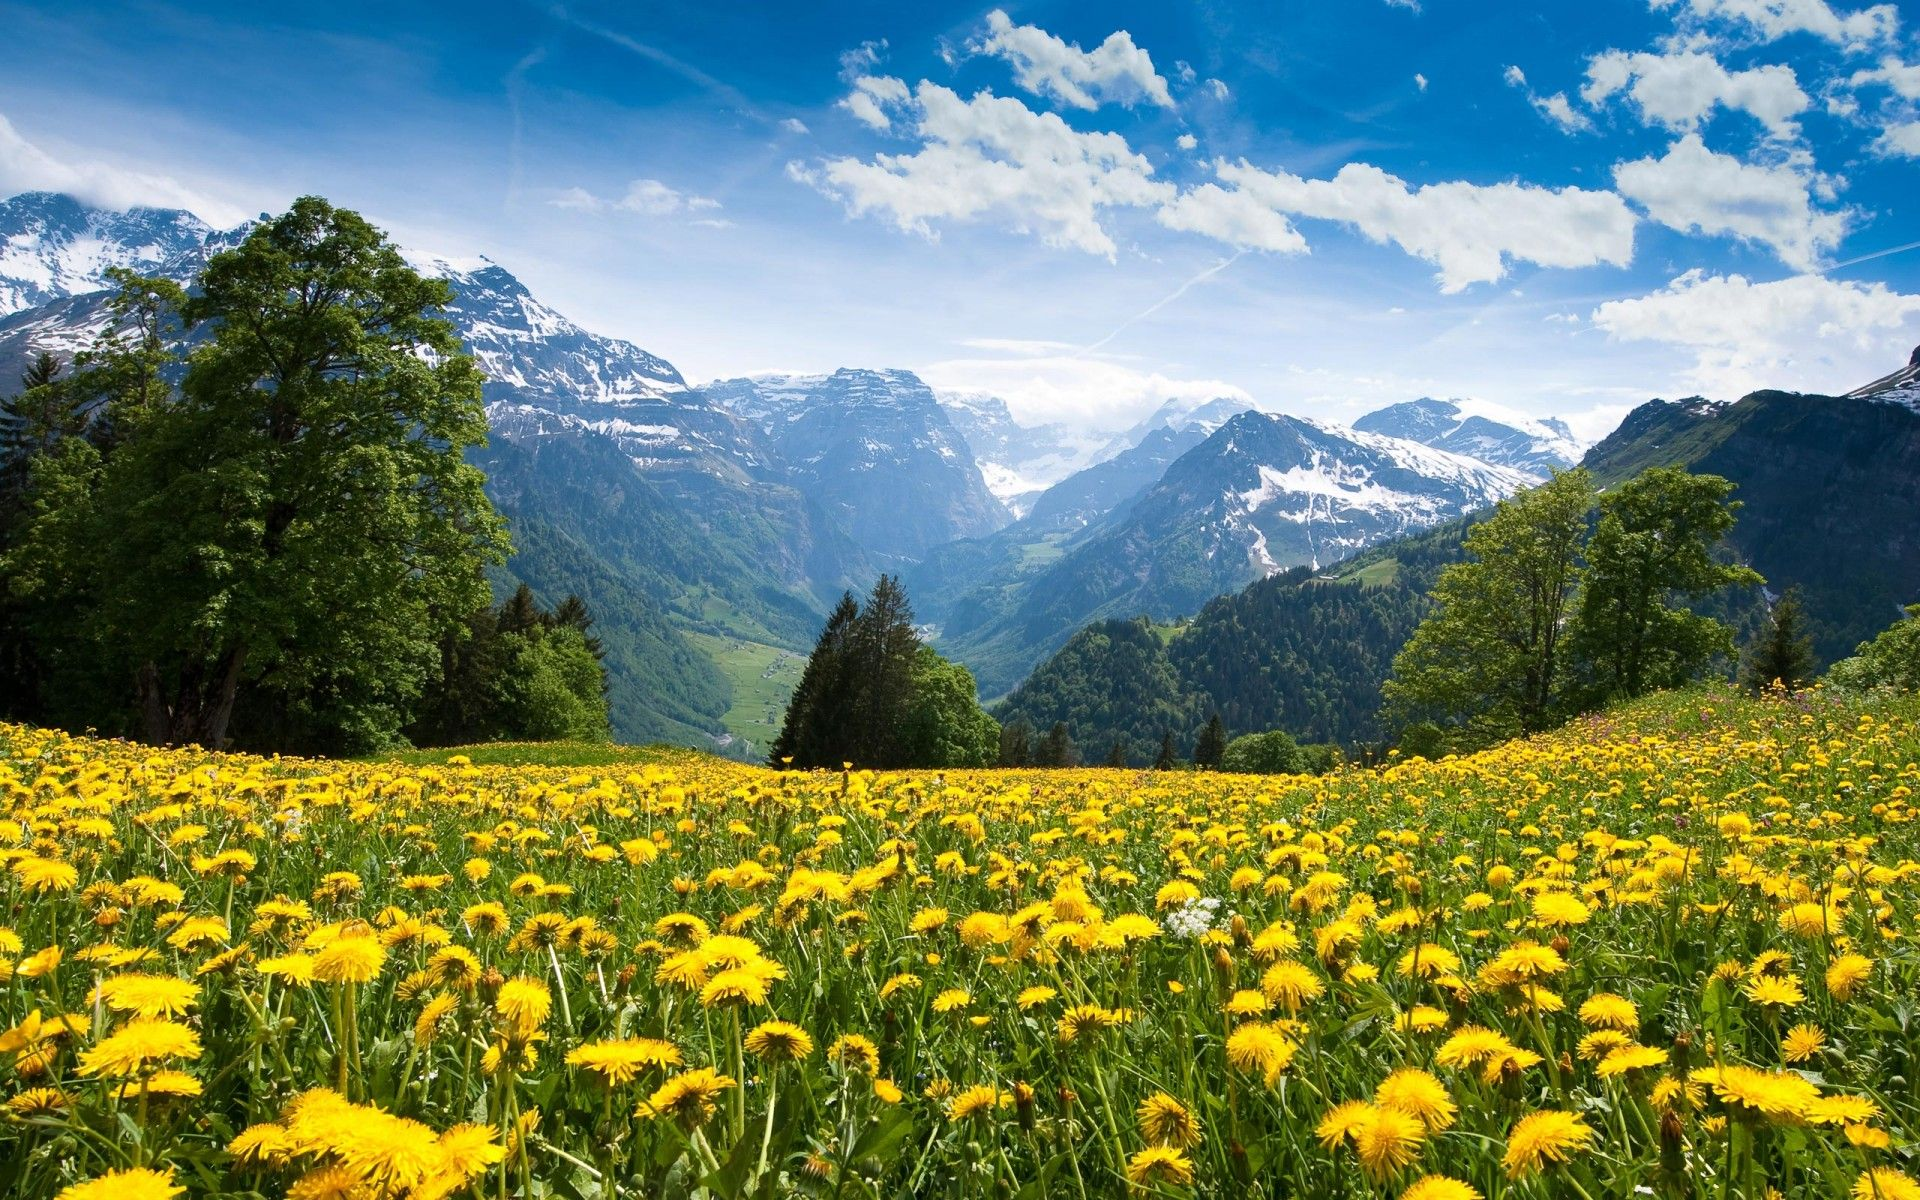 Alps Mountain By Flower Meadows Scenery Wallpaper Mountain Landscape Natural Scenery